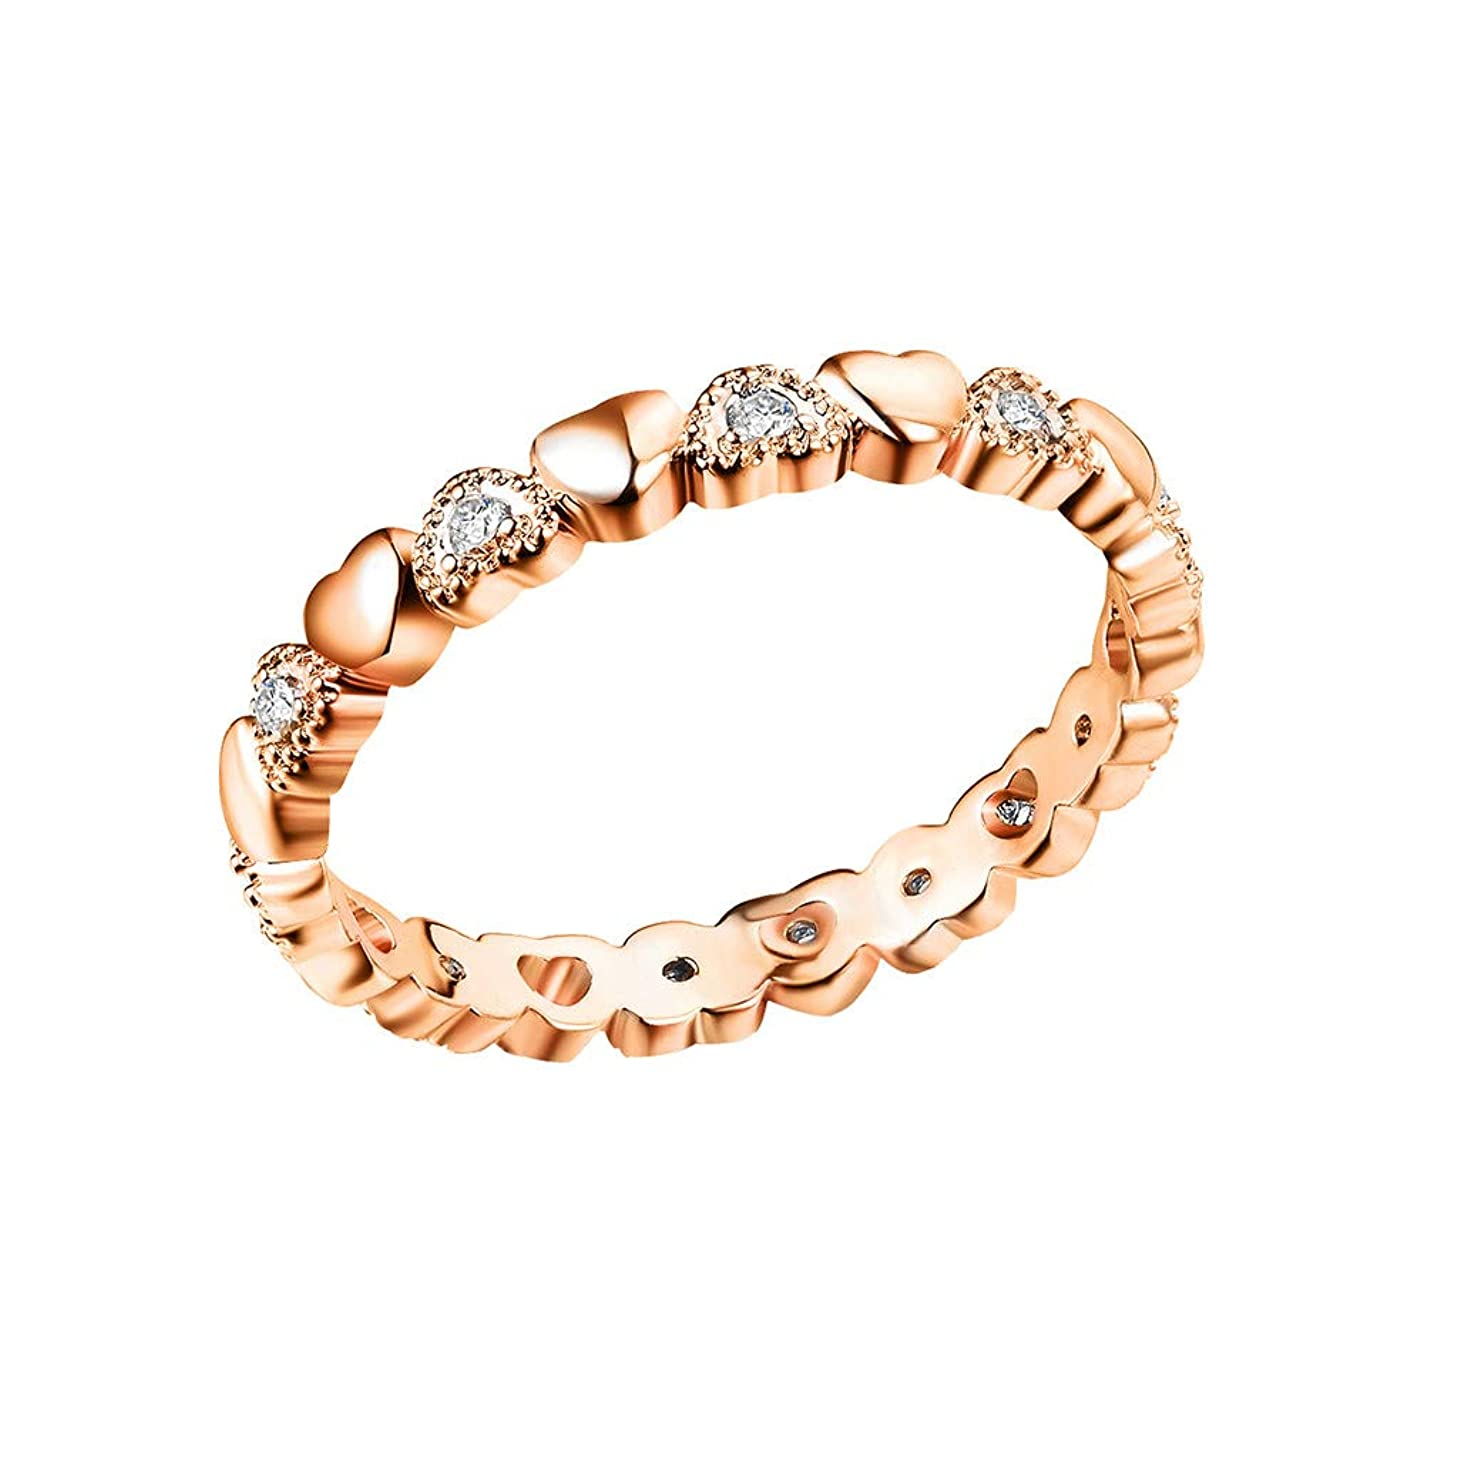 Twinsmall Sterling Silver Star Ring Stackable Rings Eternity Promise Rings for Women Girls Engagement Rings Gifts